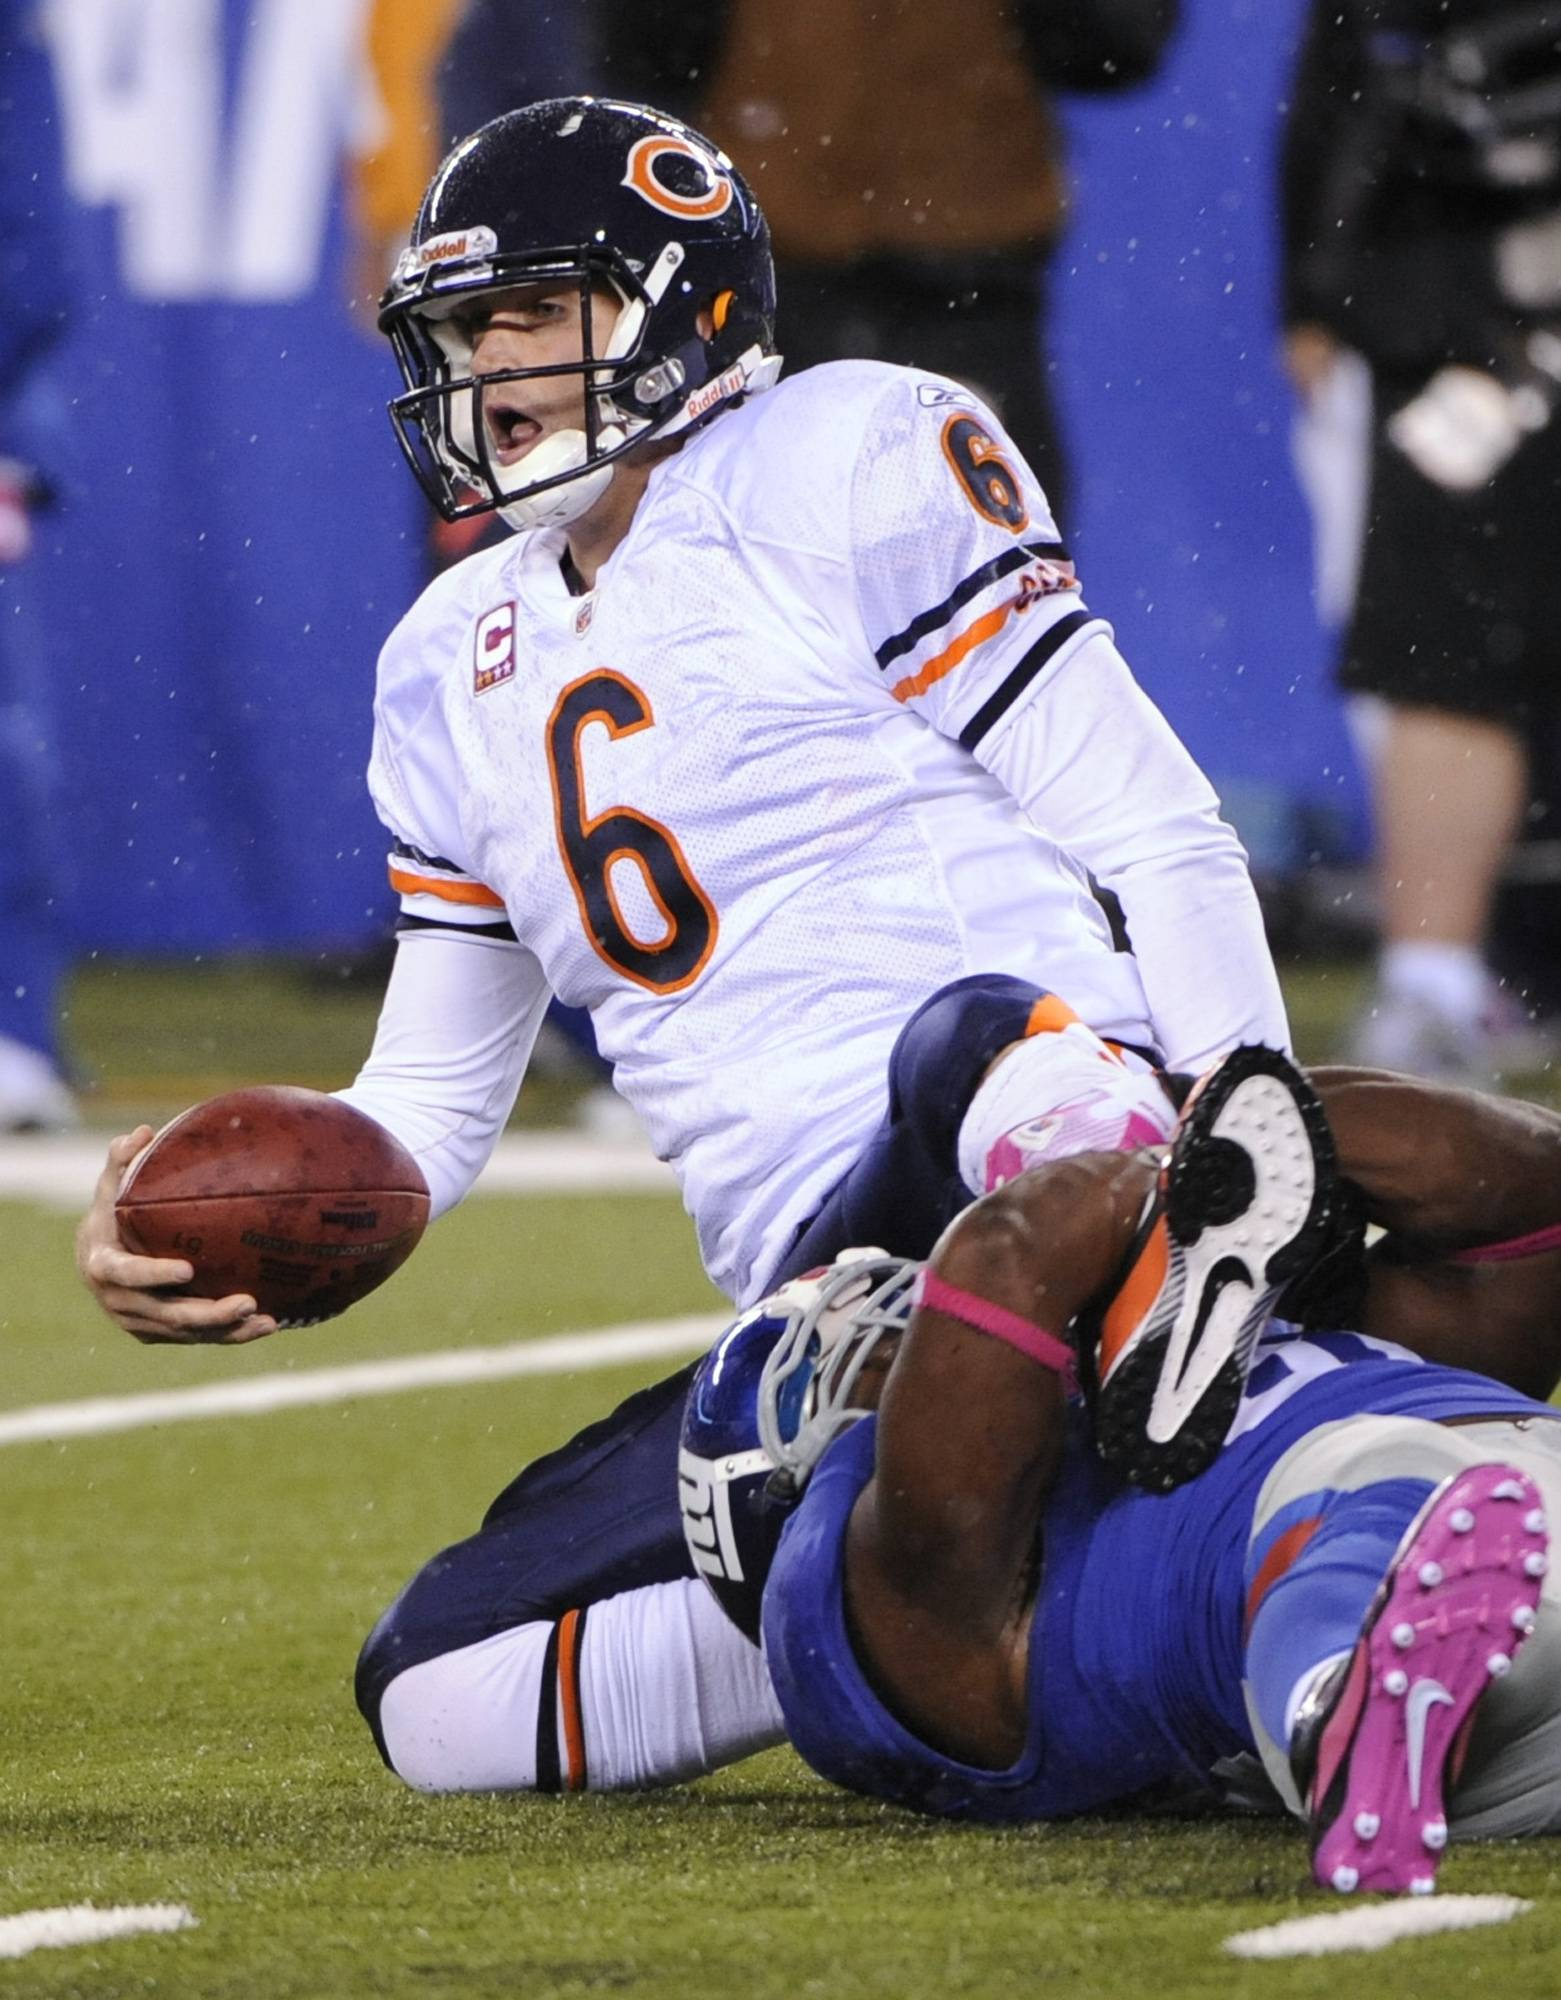 The last time the Bears played the Giants, the the Giants' ferocious pass rush sacked quarterback Jay Cutler 9 times.